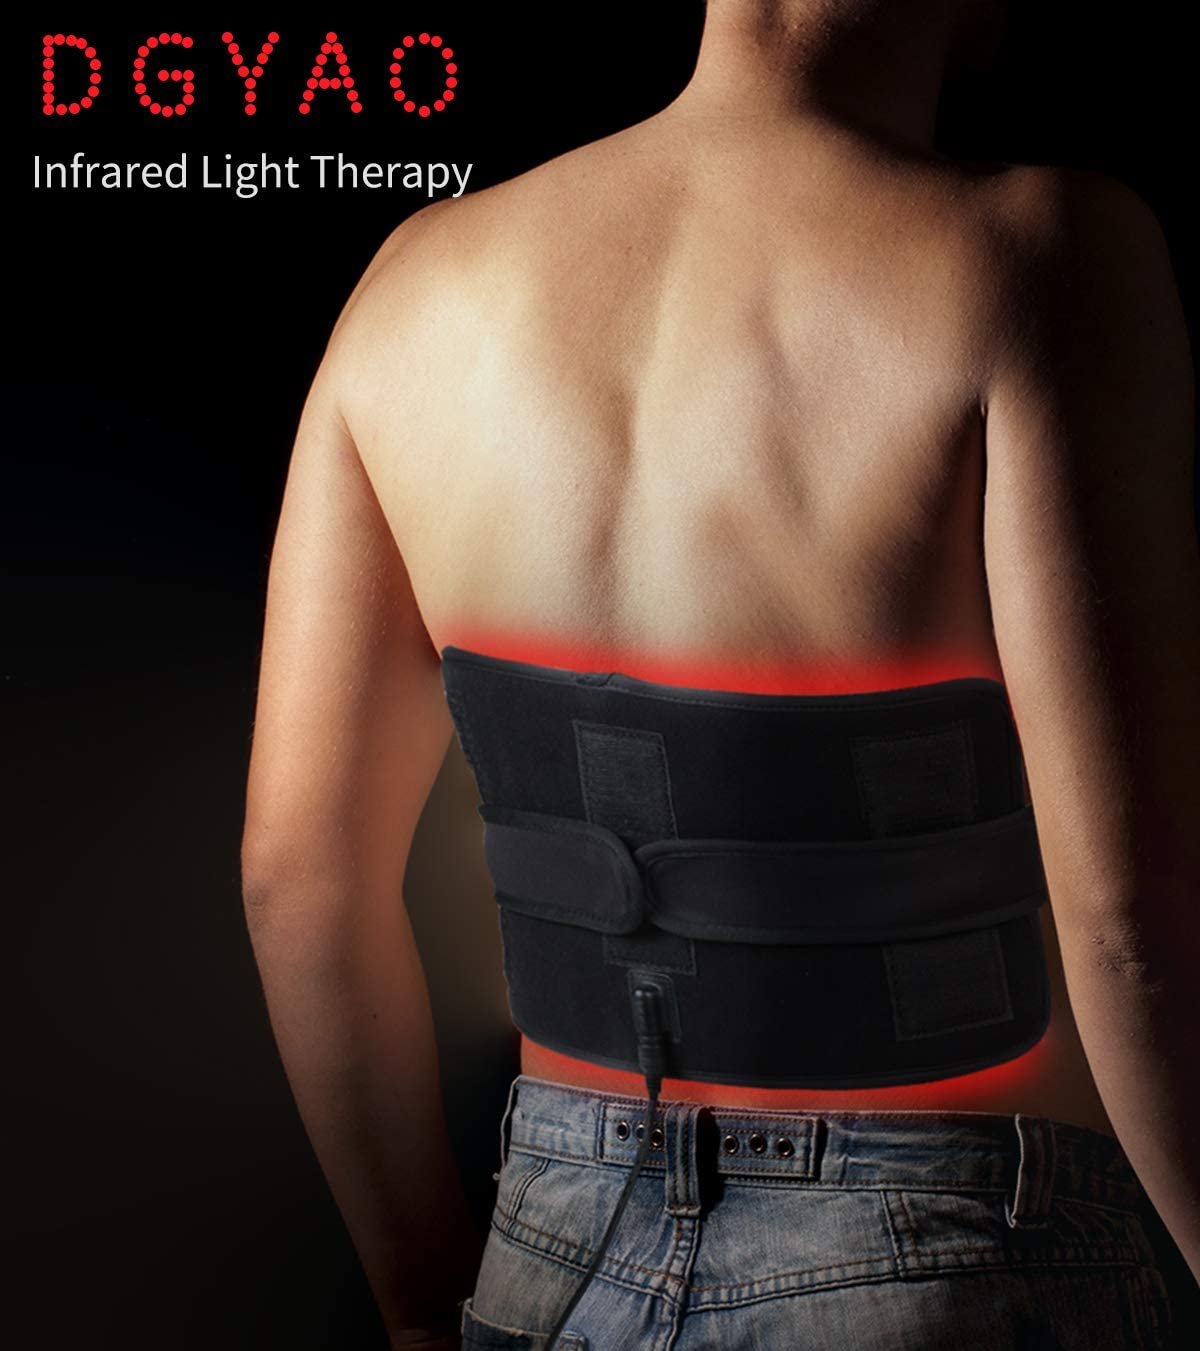 Red Light Near Infrared Therapy Led Benefits Back Pain Reliever Home Use Wearable Wrap Deep Penetrating Heals Lighting Pad Relief for Arthritis Feet Joints Muscle Knee Elbow Inflammation Nerve Damage: Health & Personal Care